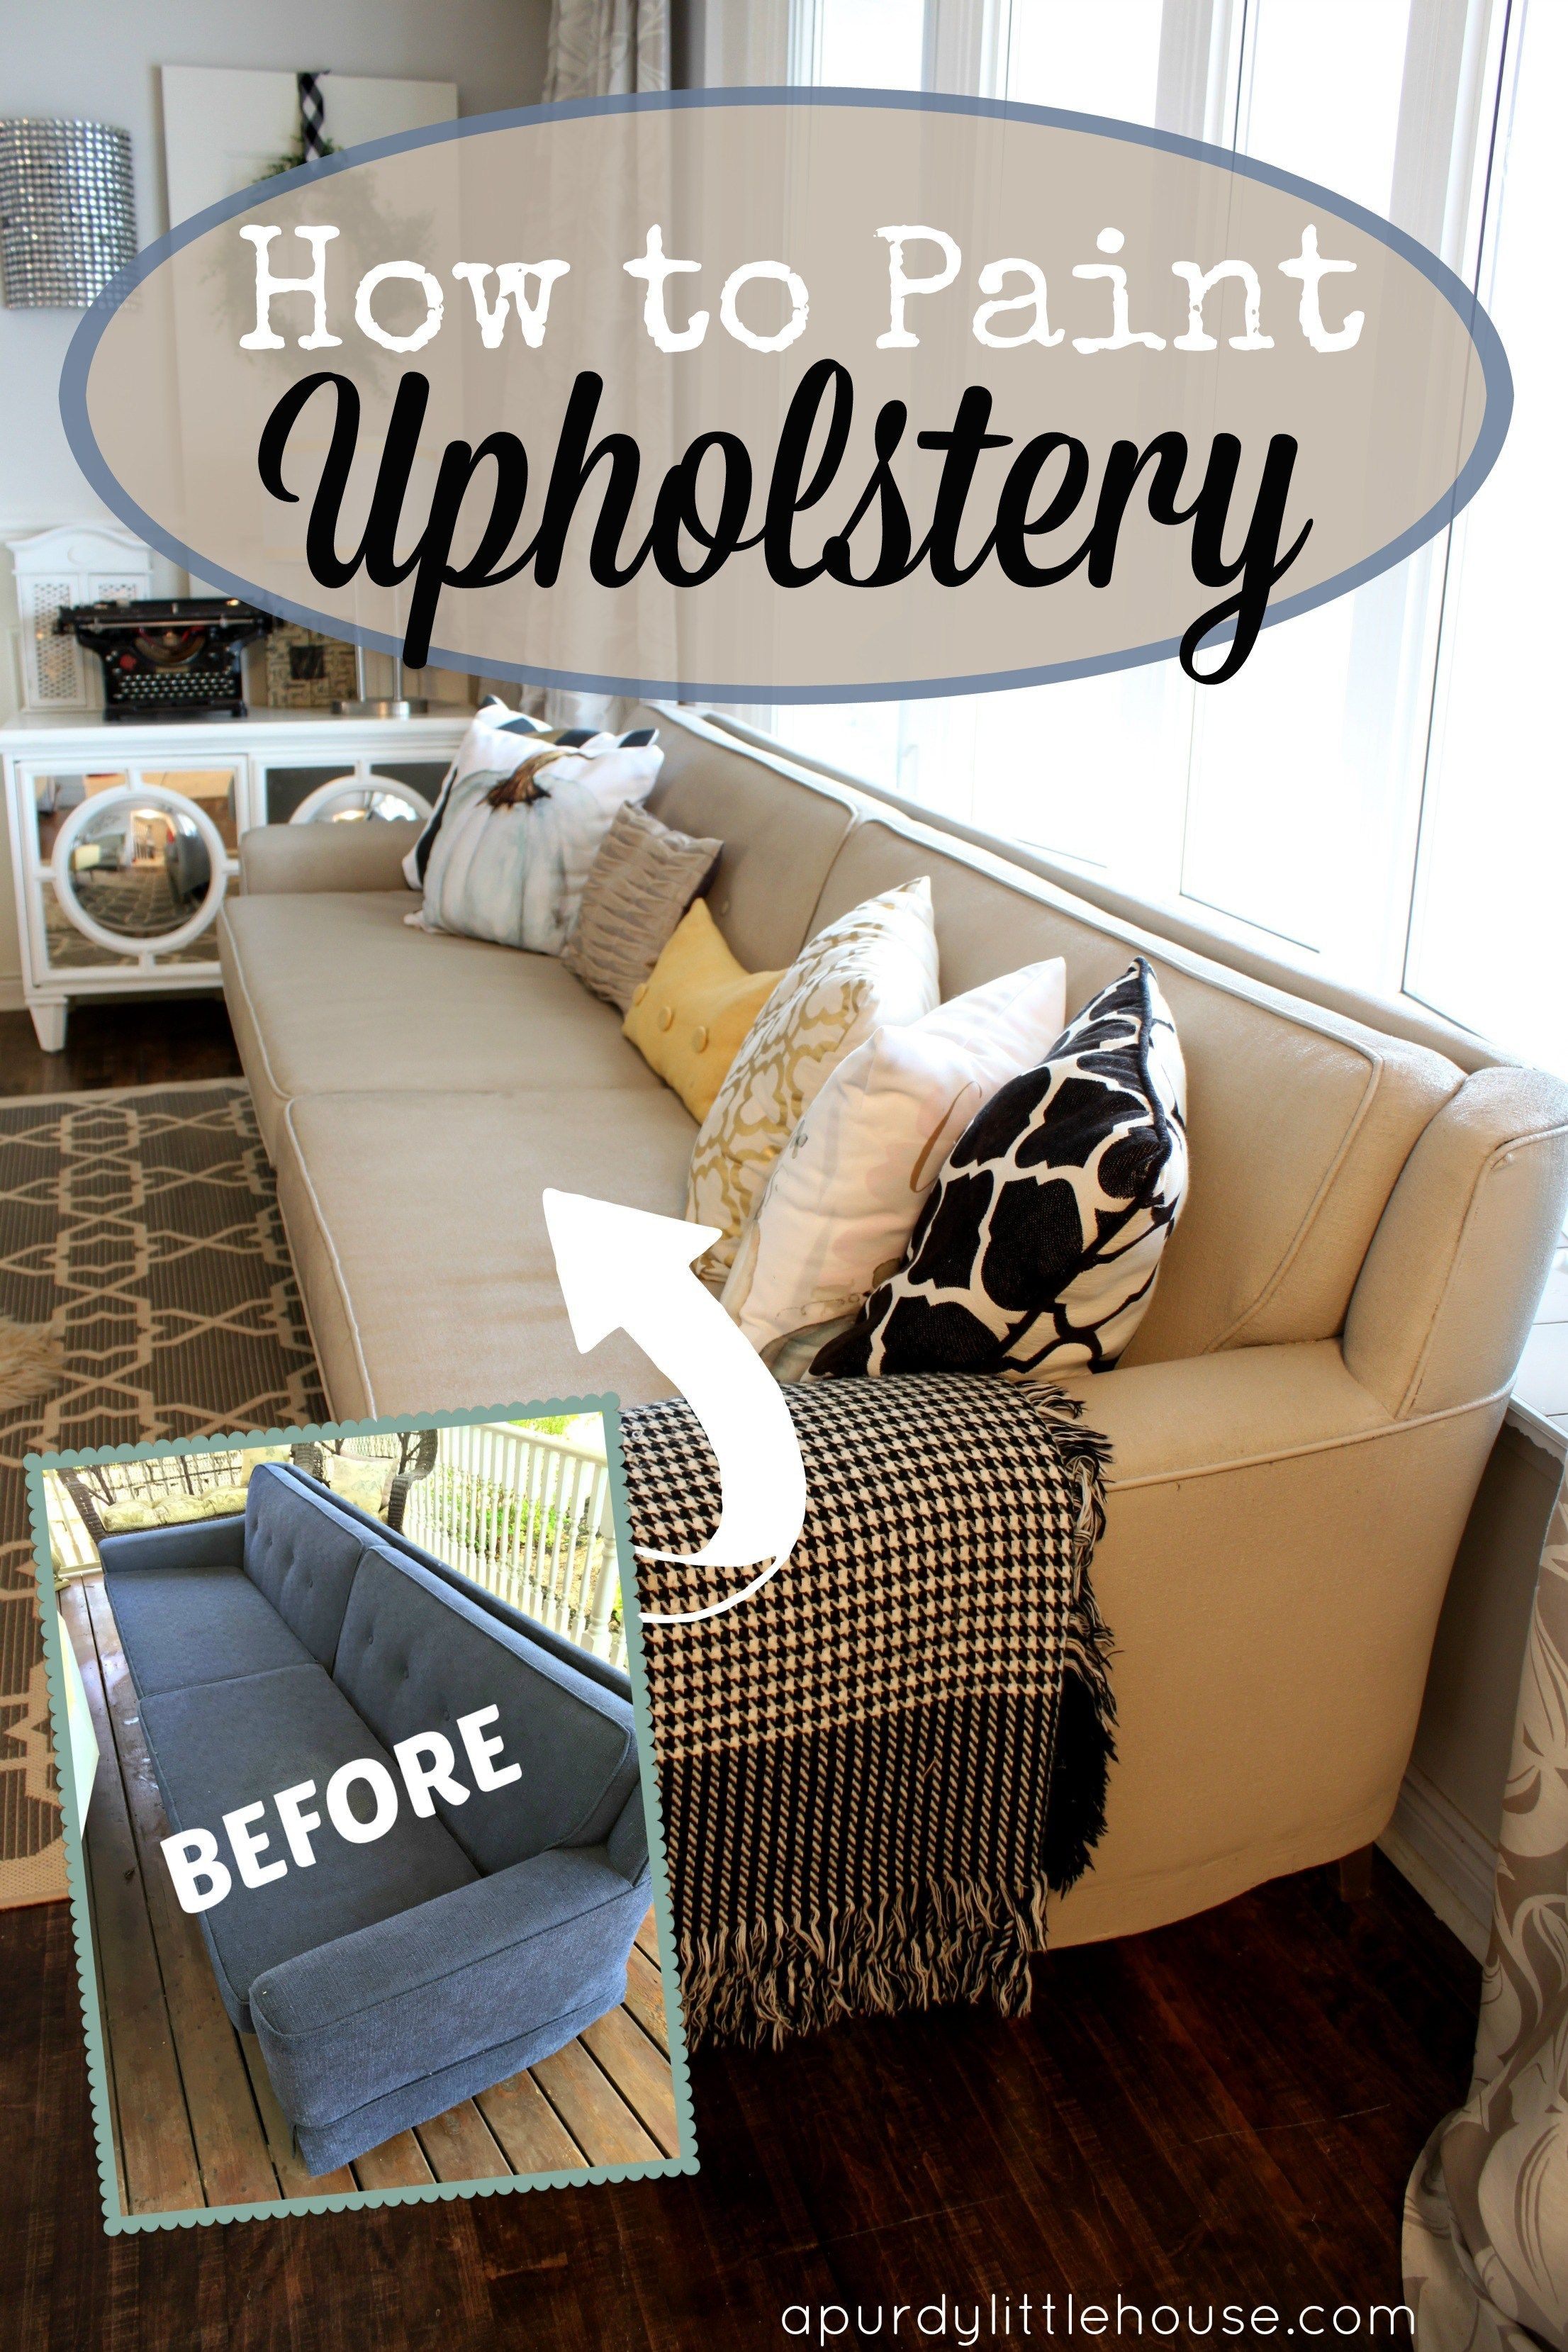 How to Paint Upholstery and change the colour of any fabric furniture piece